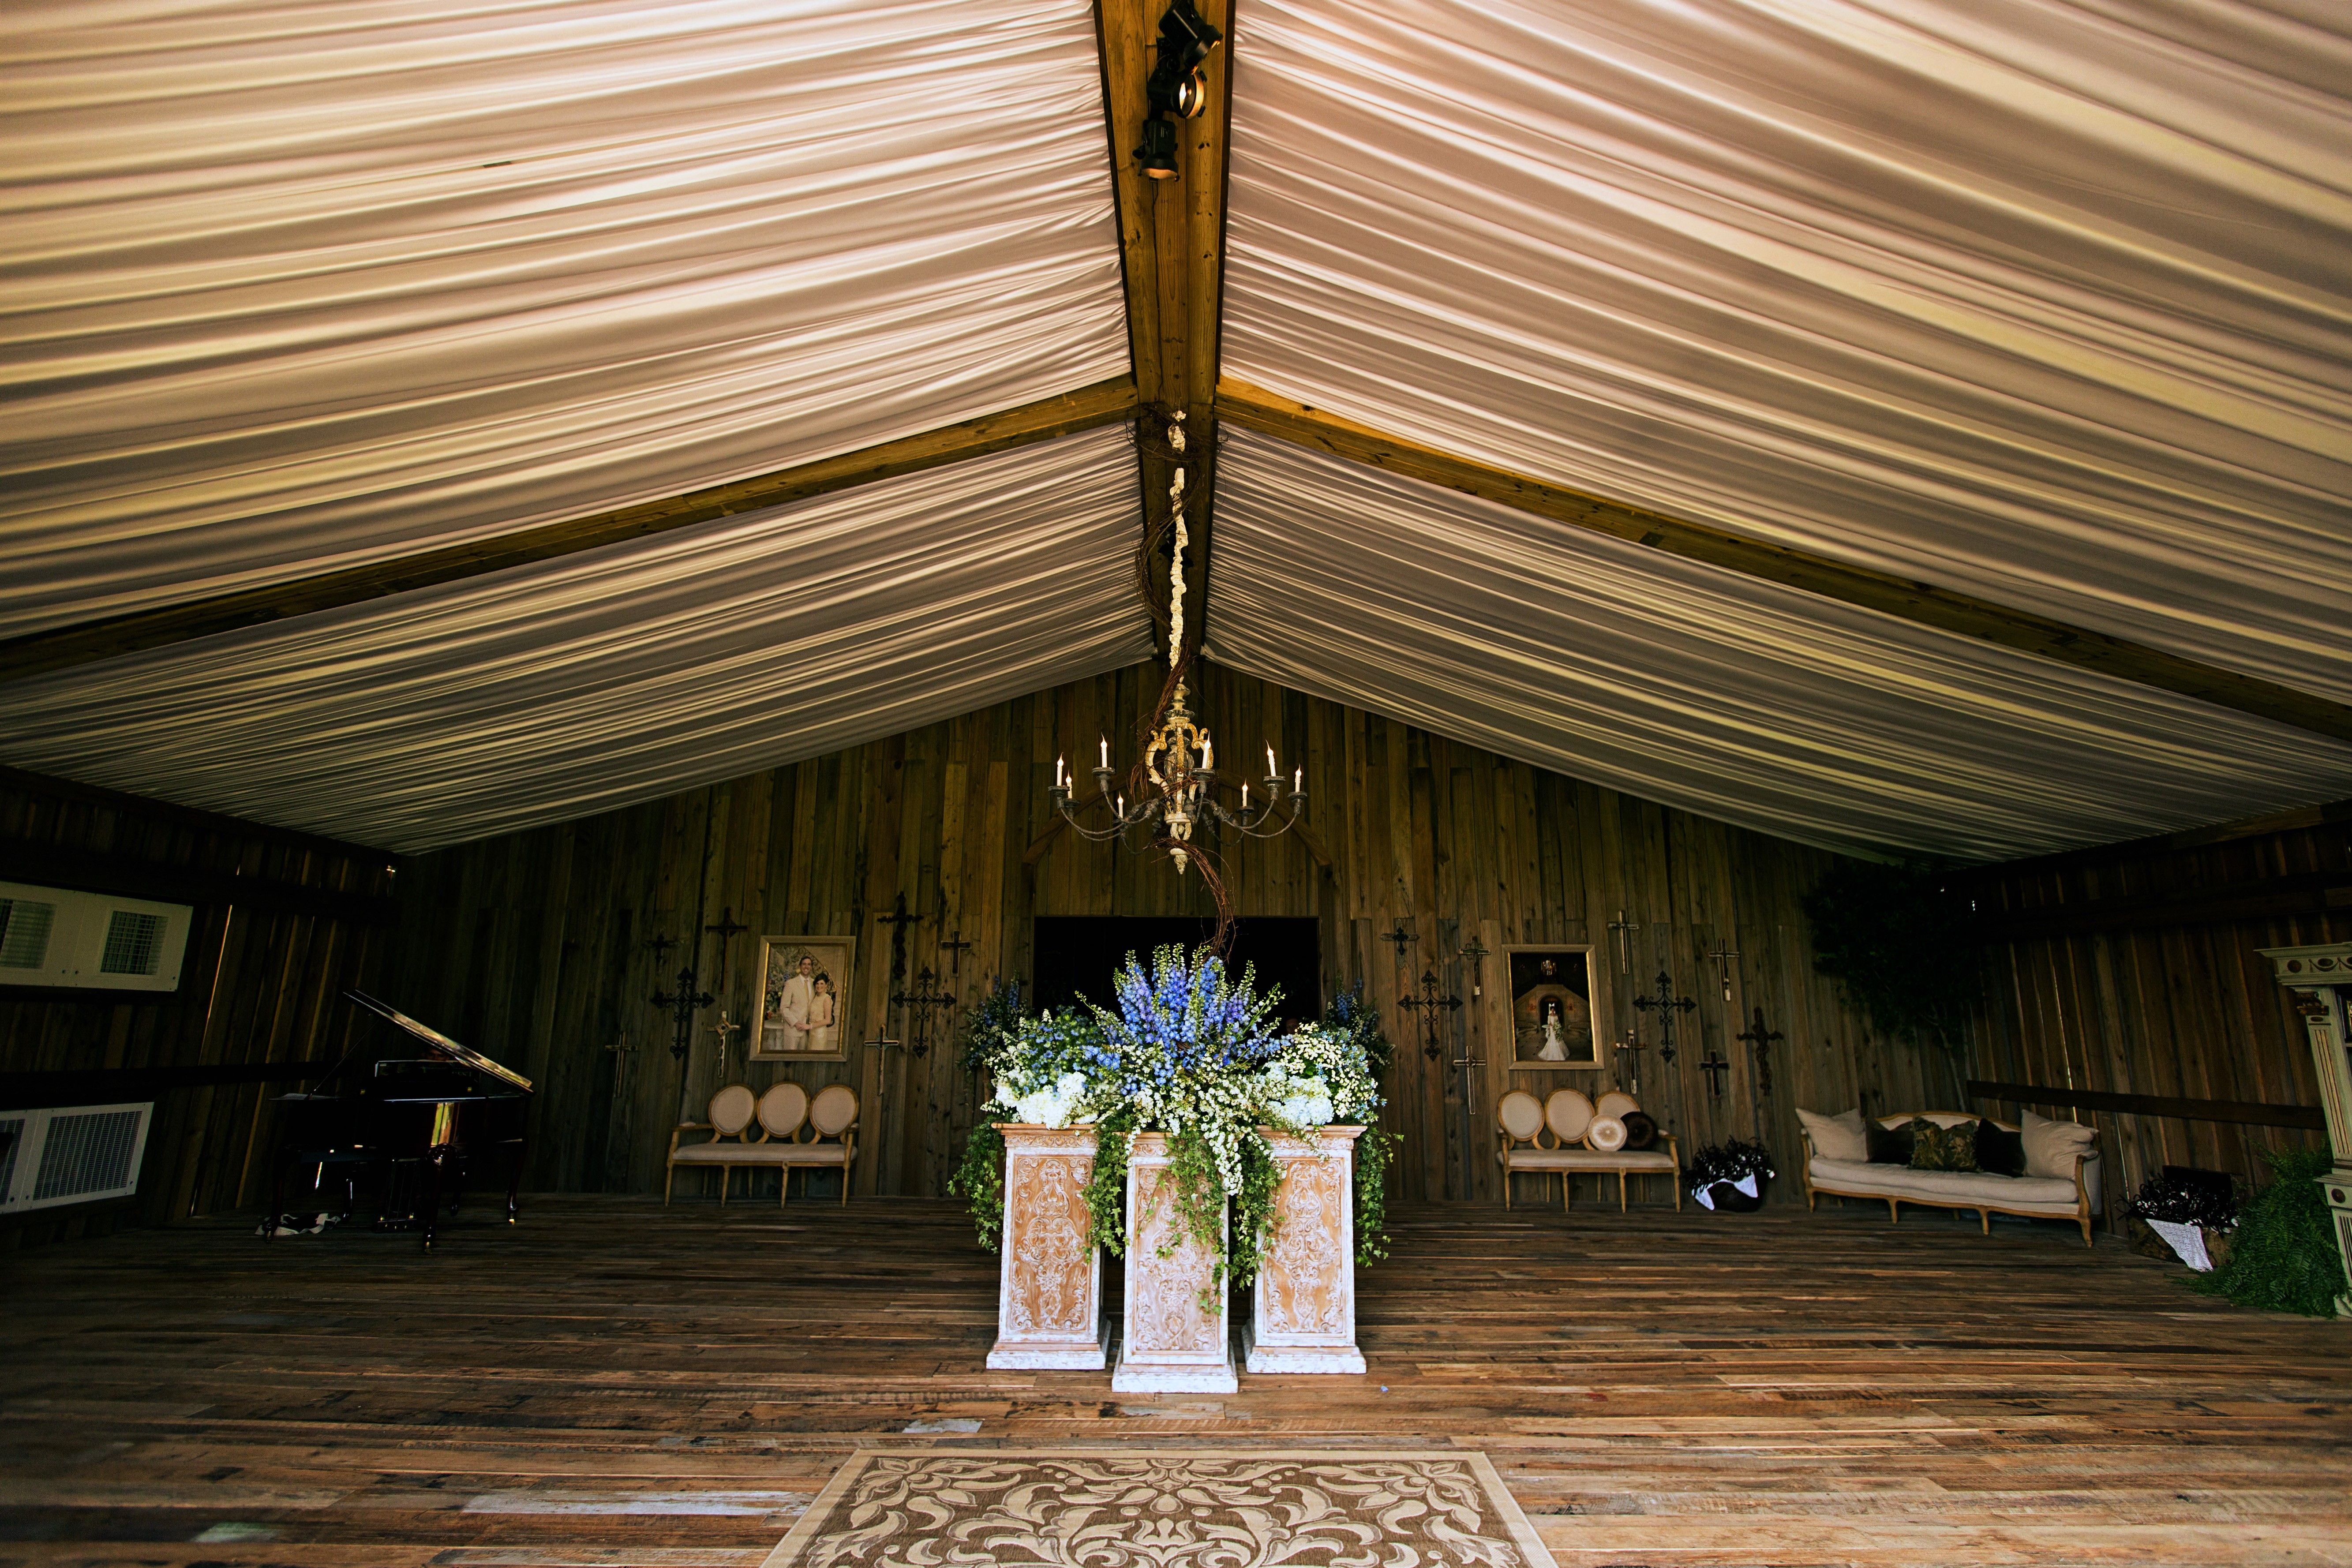 This was the grand entrance tent for a wedding reception. The custom wooden floors and walls were created from an old barn with white fabric covering the tents beam and ceiling.